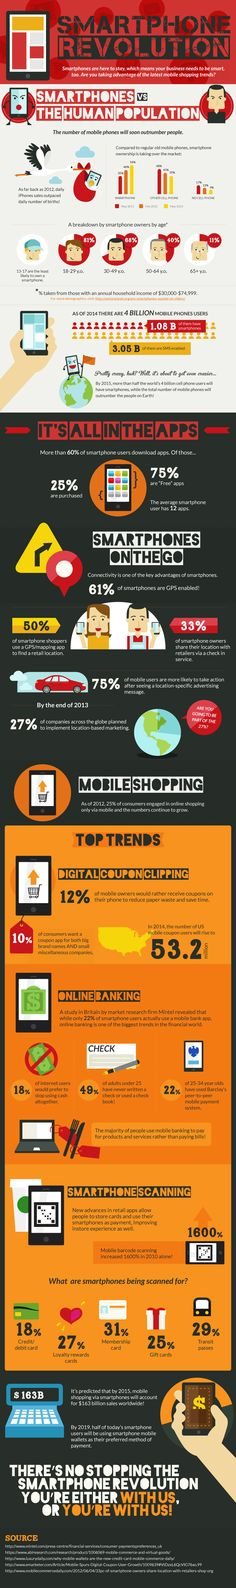 #Smartphone Revolution: A Retailers Guide to the New Mobile Market - #infographic